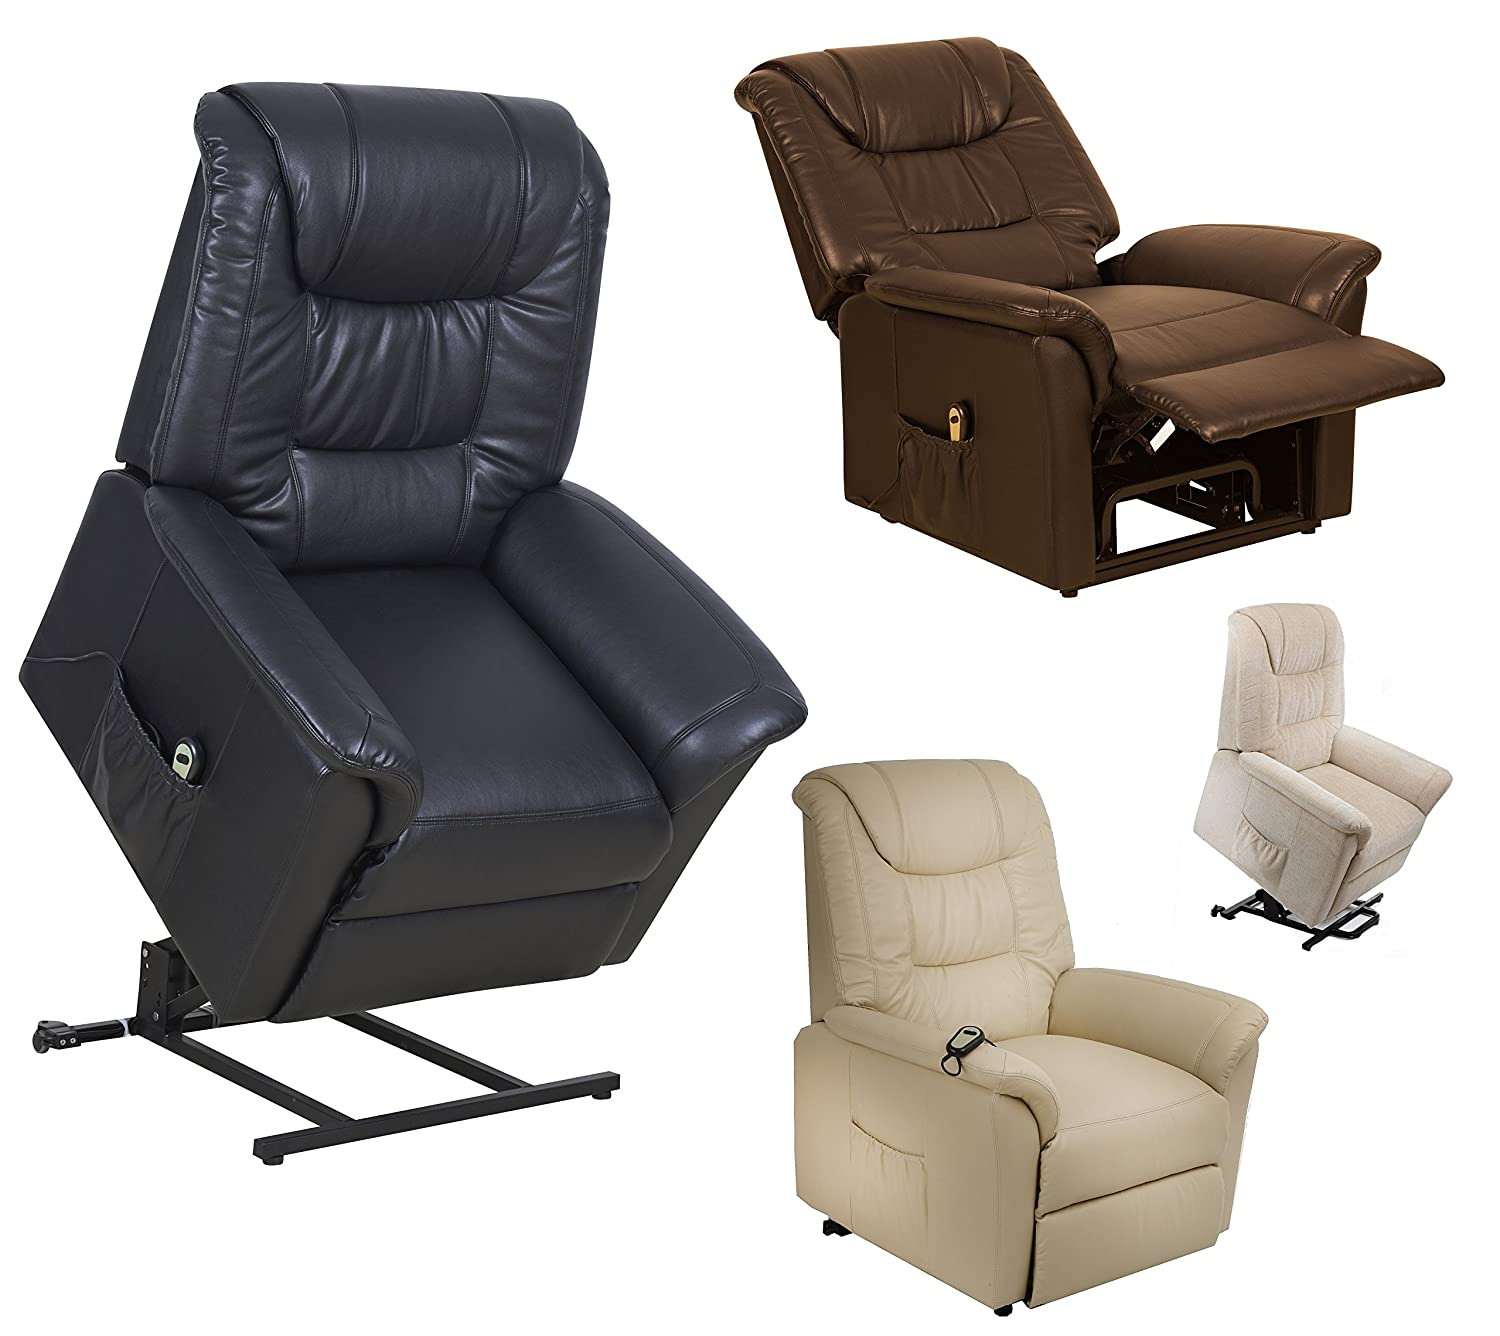 Riva Dual motor electric riser and recliner chair